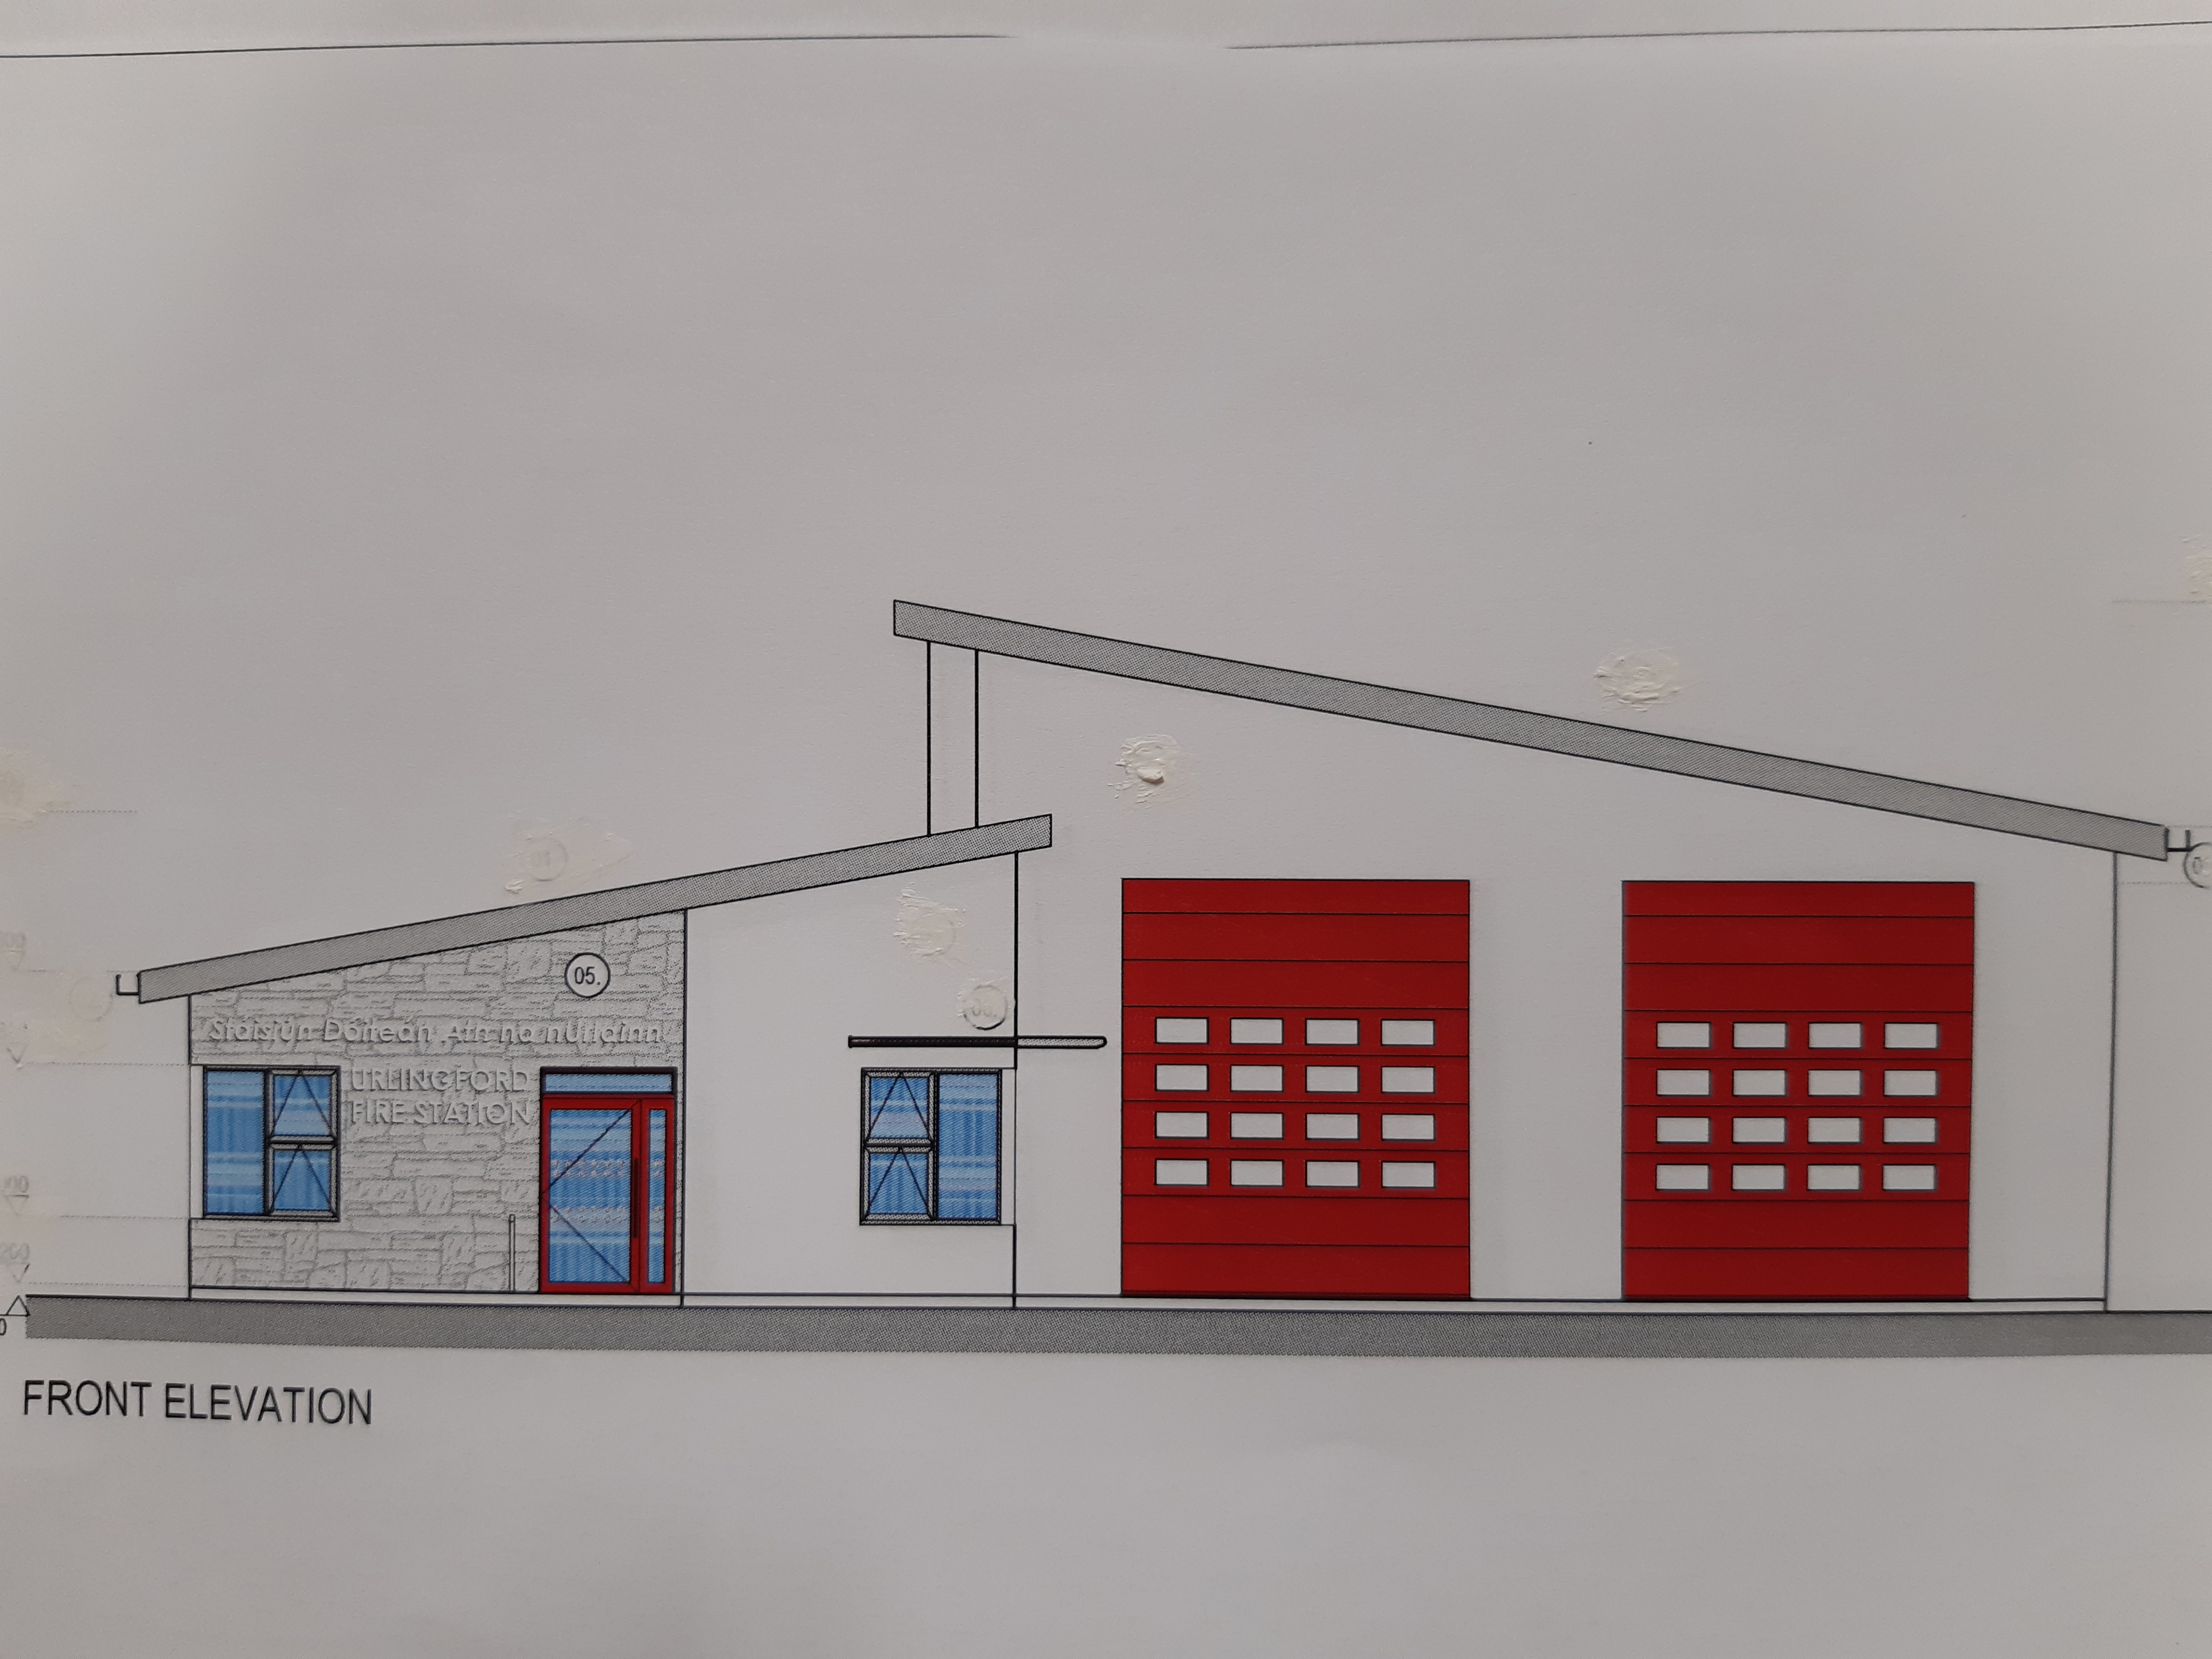 Drawing Urlingford Fire Station